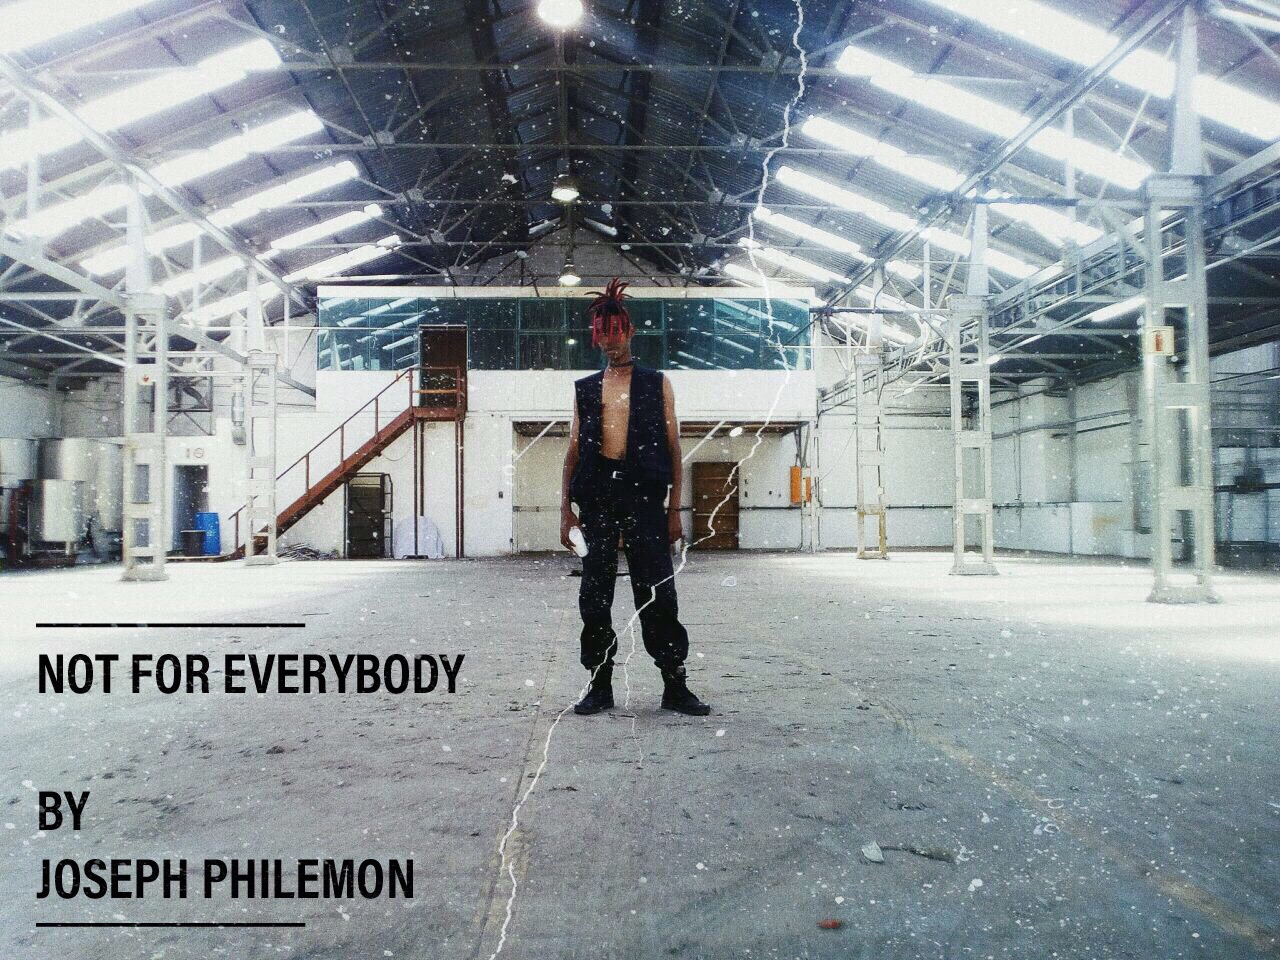 Listen To This New 'NOT FOR EVERYBODY' EP By Joseph Philemon image1